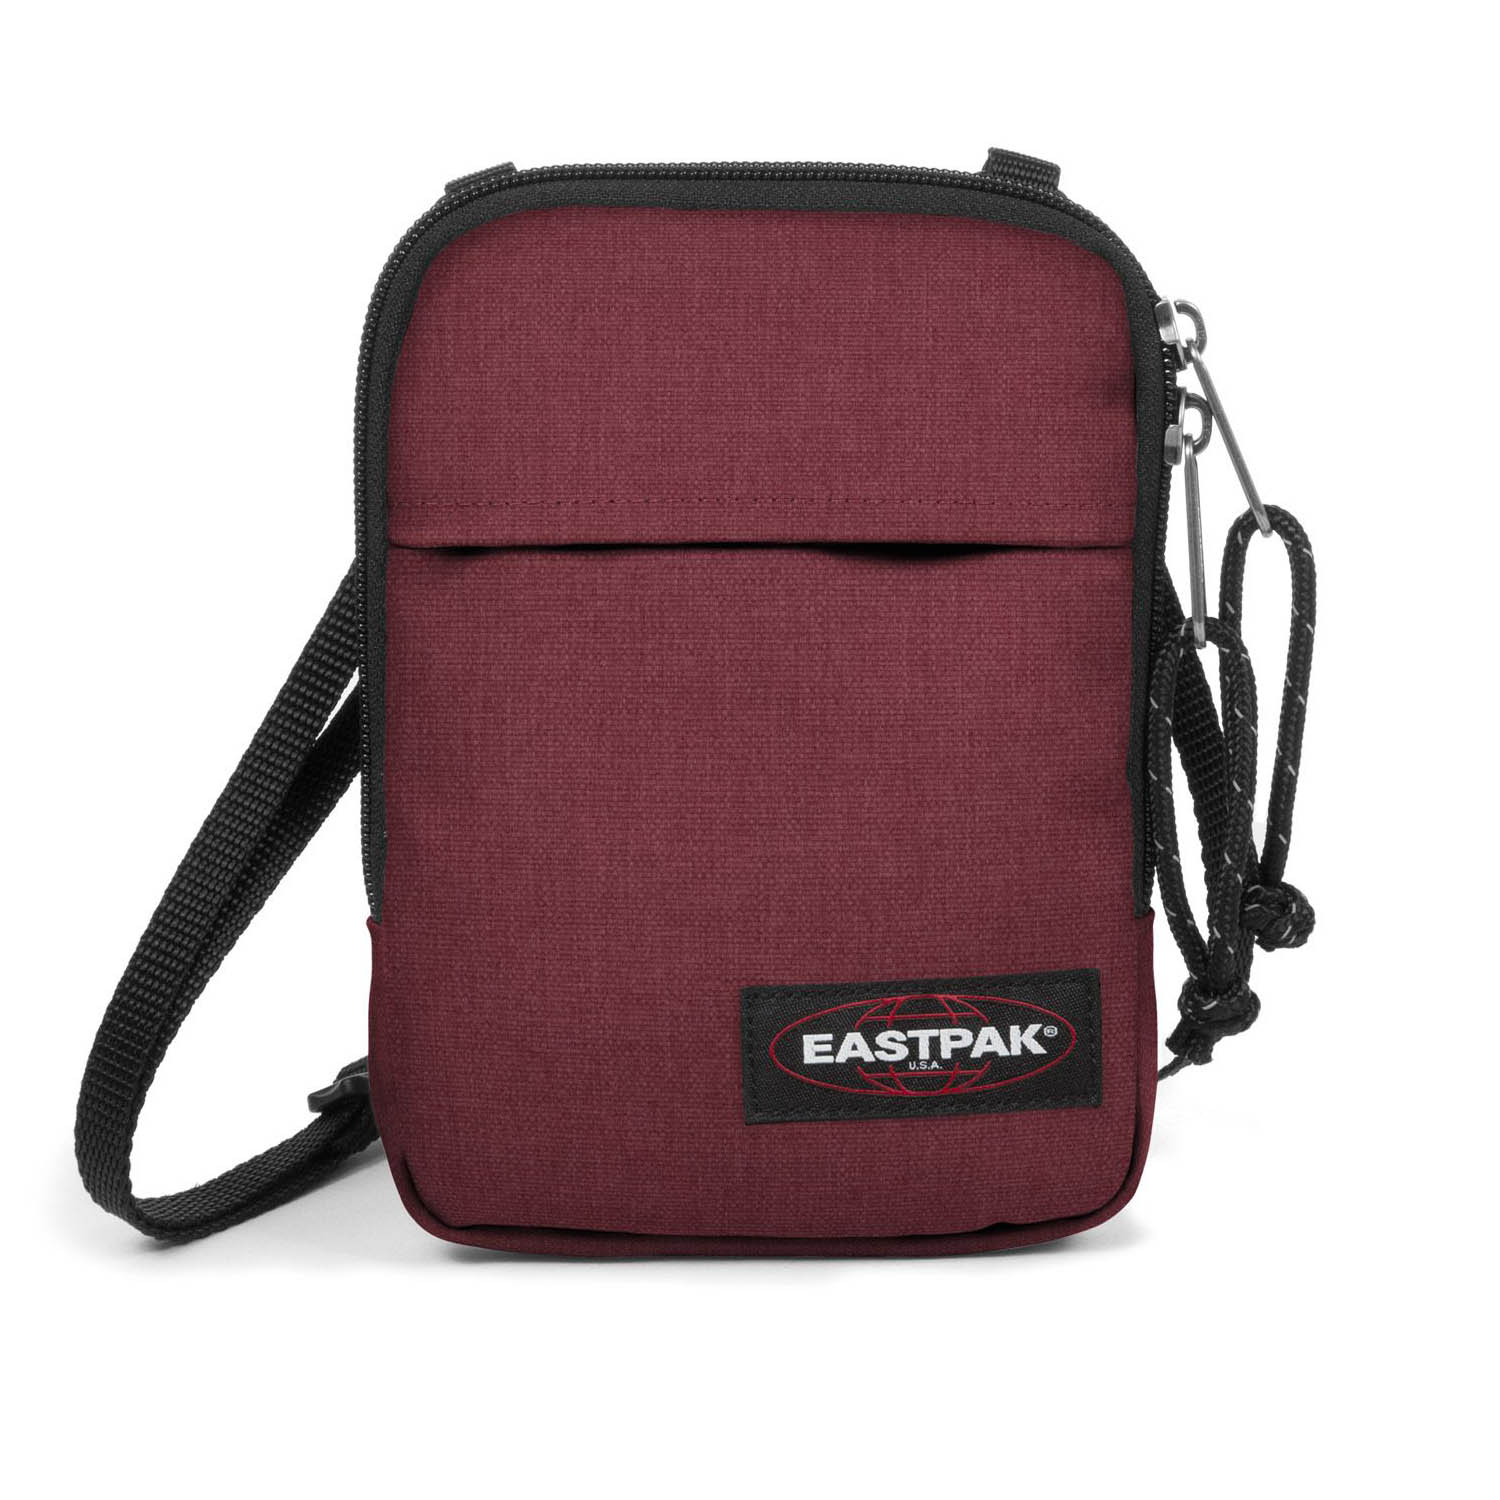 EASTPAK BUDDY CRAFTY WINE NAMZ